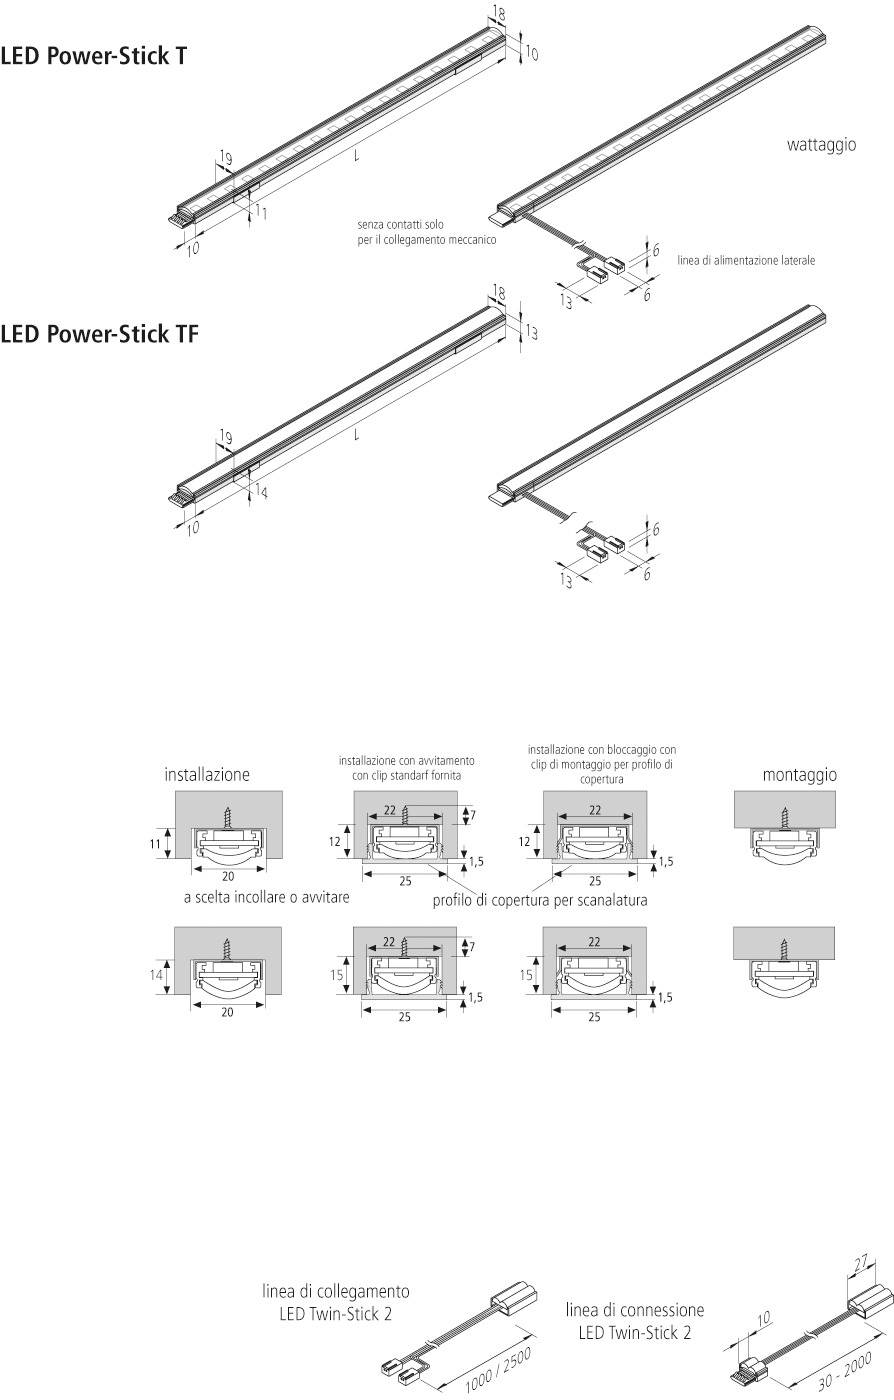 Anteprima: LED-Power-Stick-T-_-TF_vec_3D_it